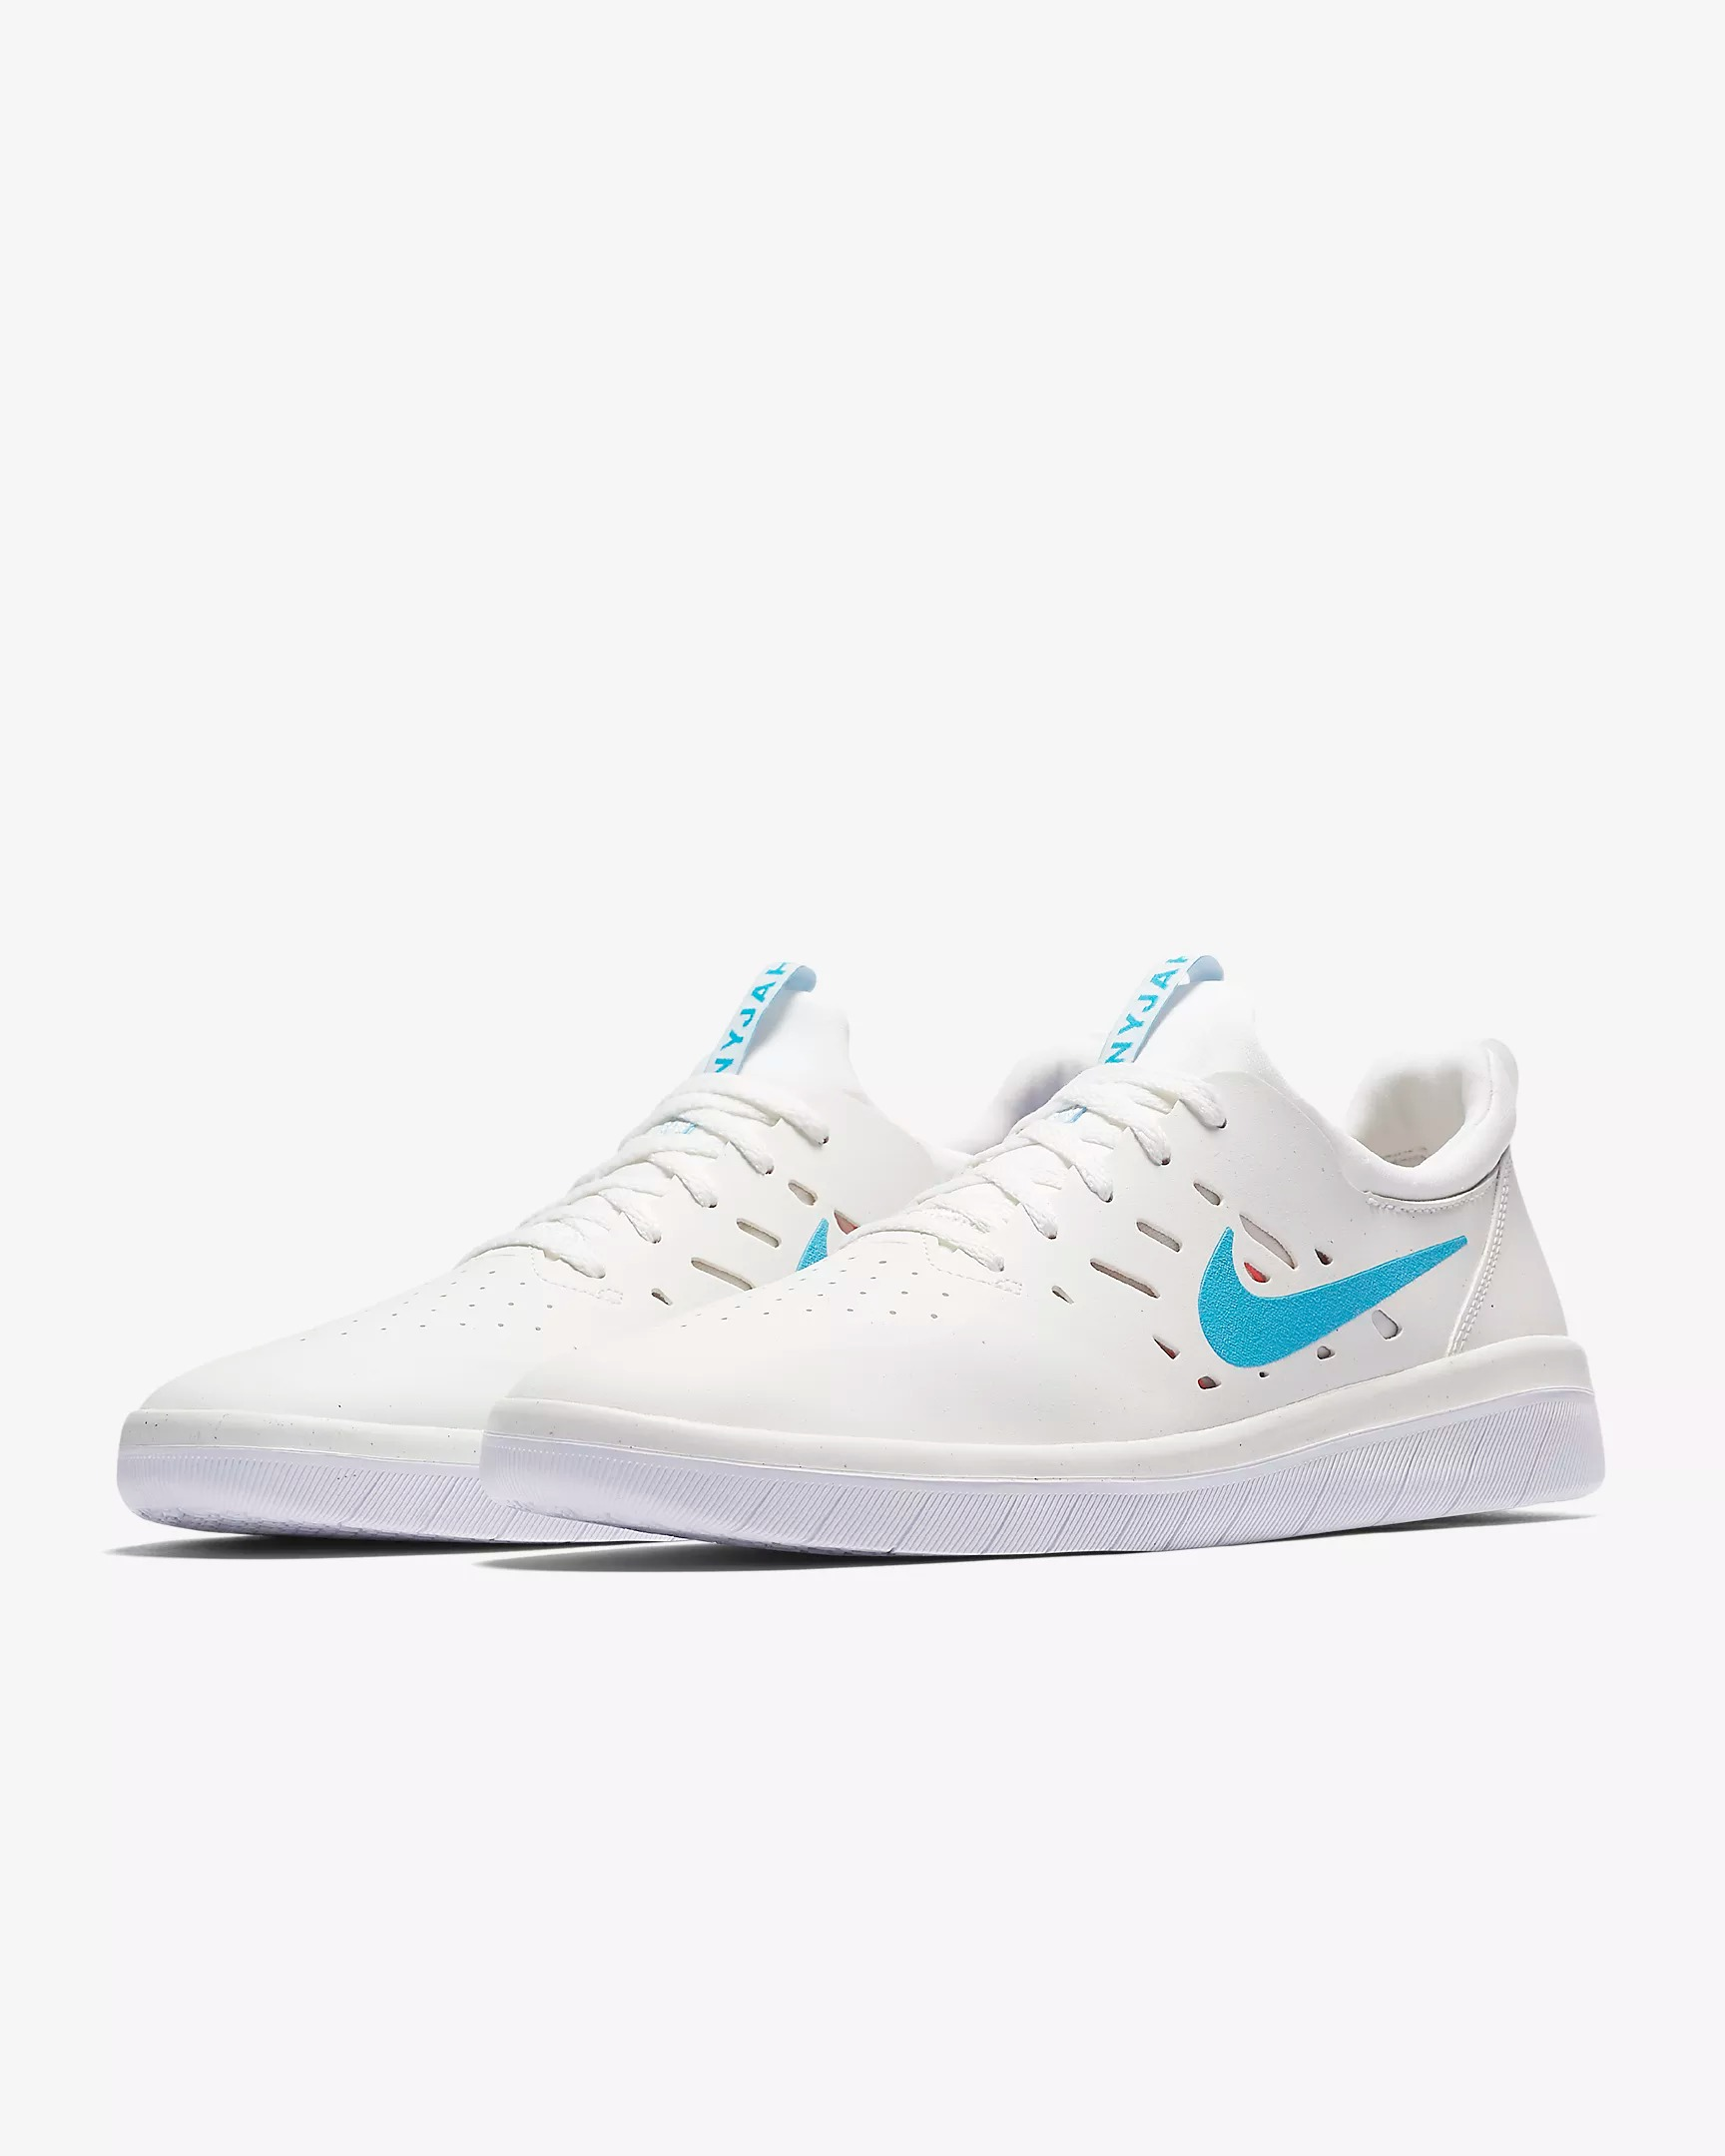 best sneakers a74af 31e3b Nike SB Nyjah Free Sneakers - SPORT SHOES Lifestyle Shoes  Sneakers -  Superfanas.lt